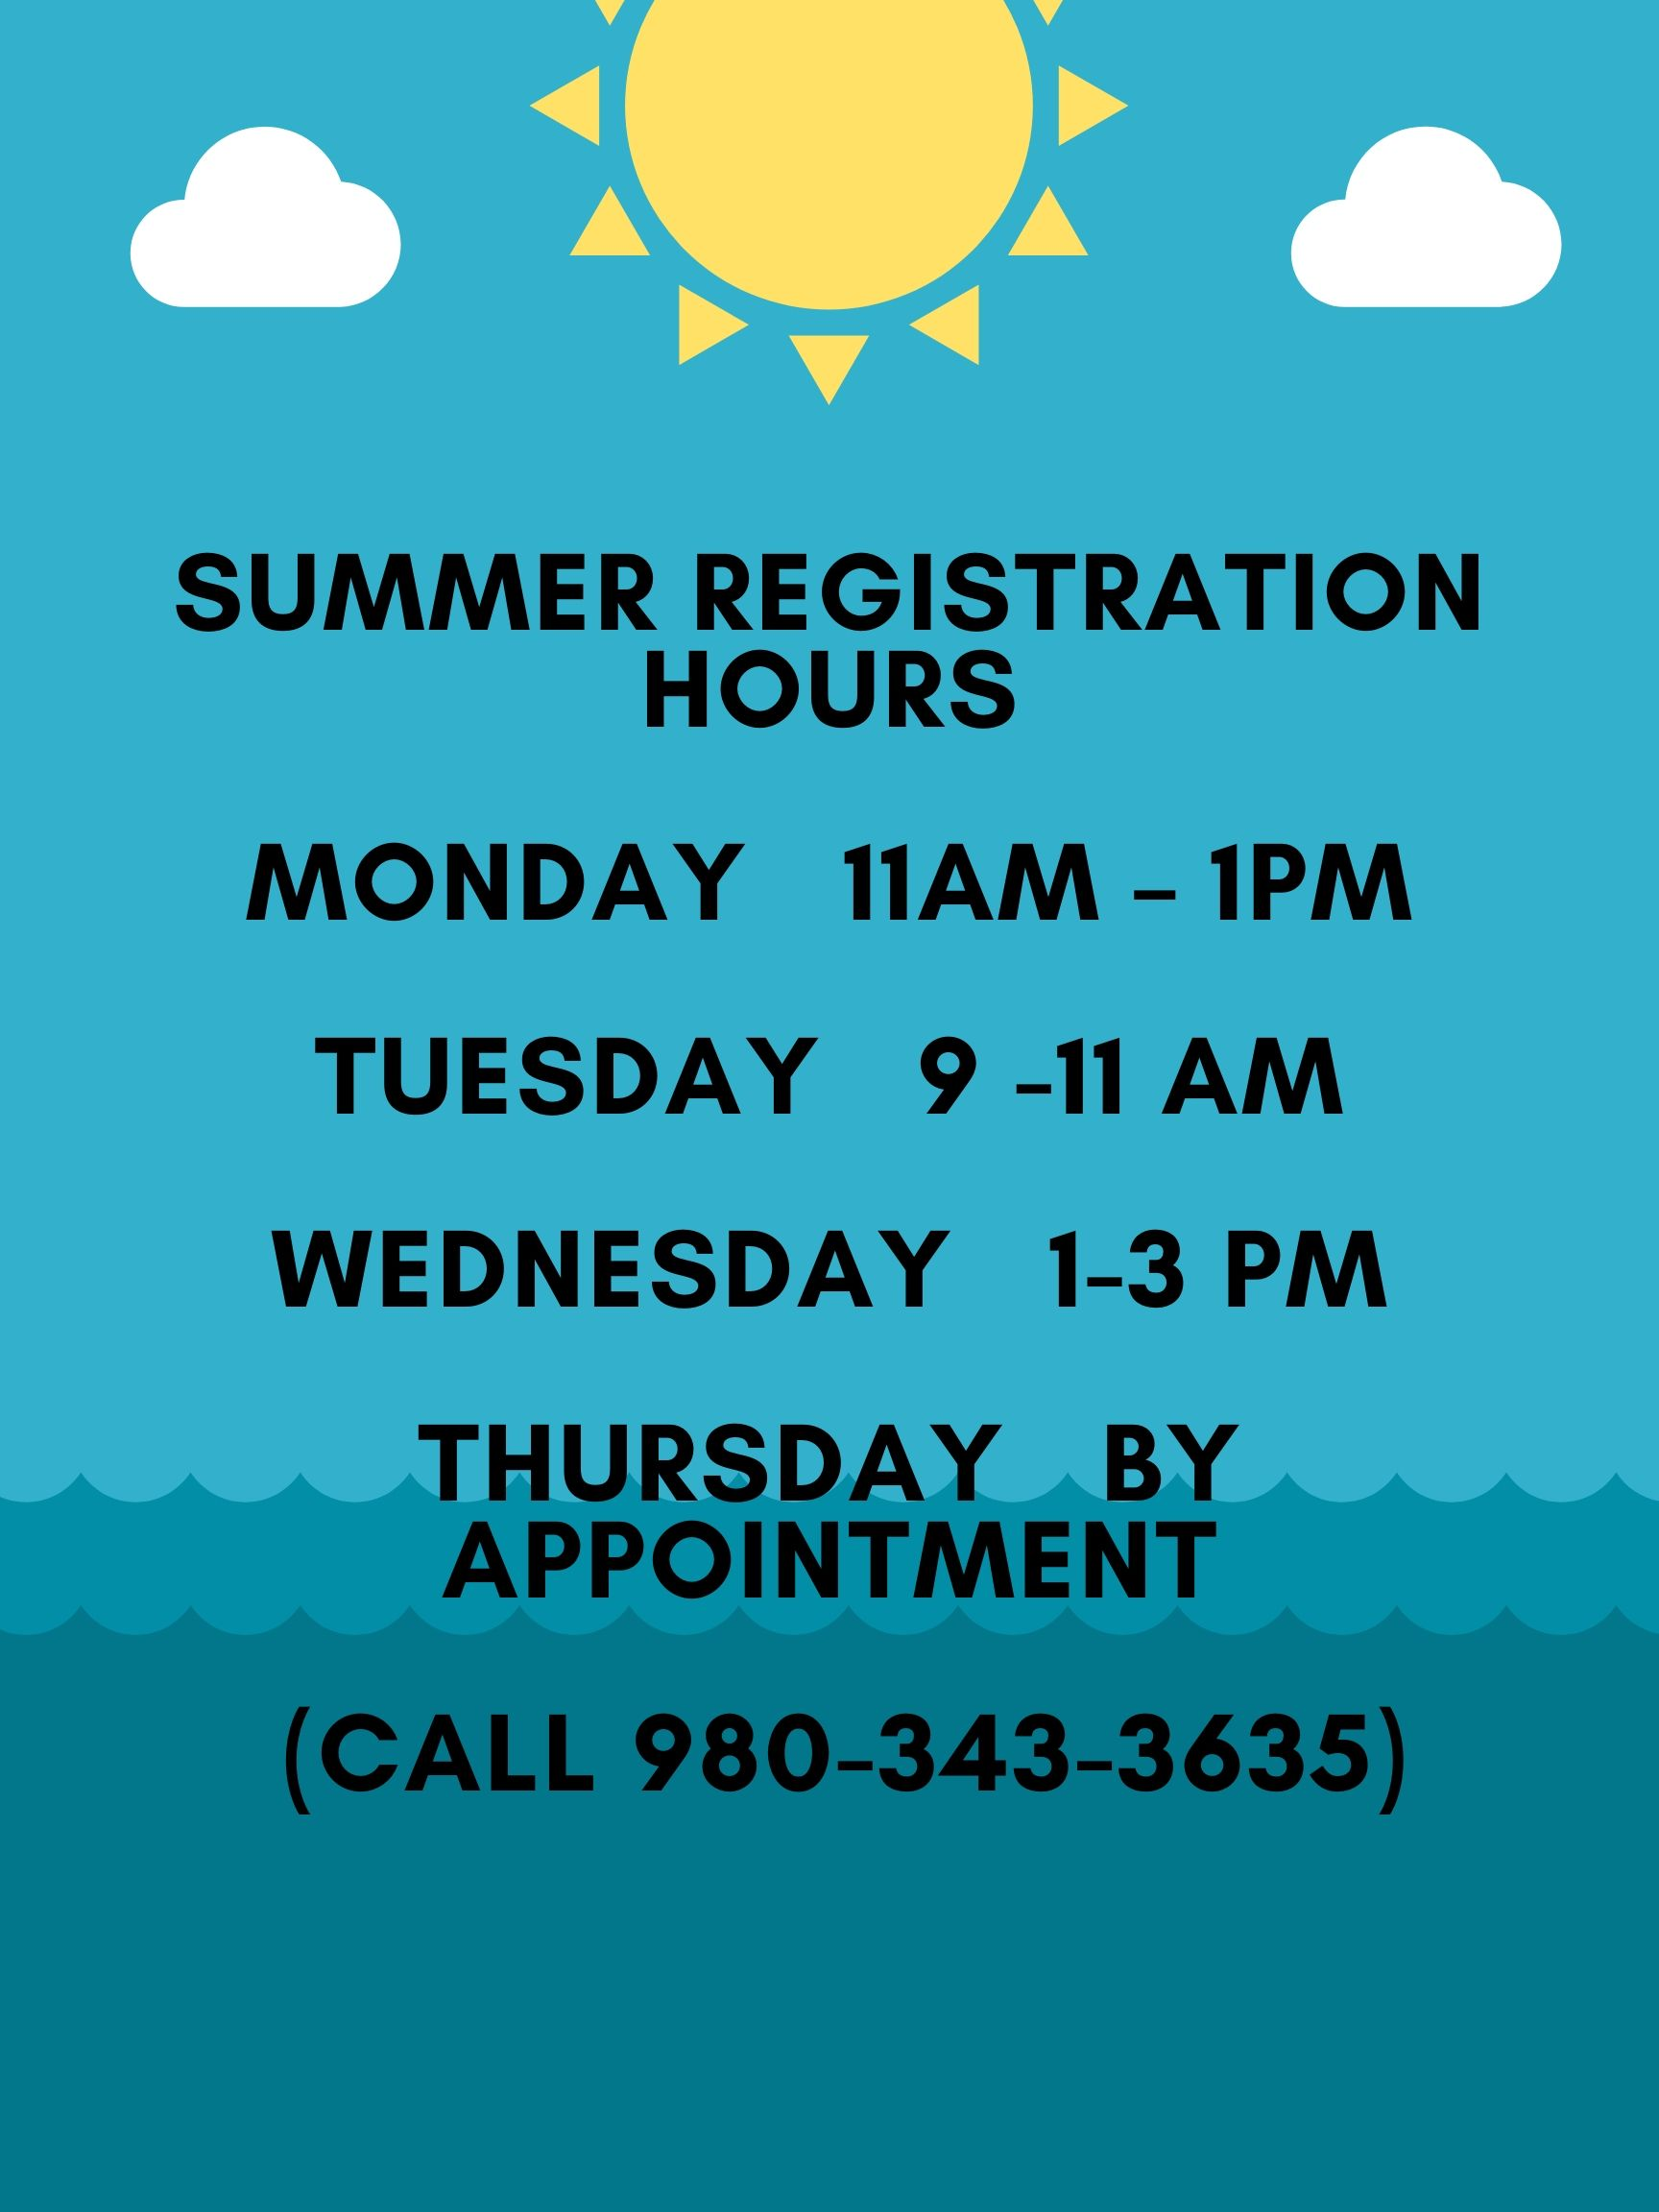 Summer Registration Hours Monday 11am – 1pm Tuesday 9 -11 am Wednesday 1-3 pm Thursday by appointment (call 980-343-3635).jpg